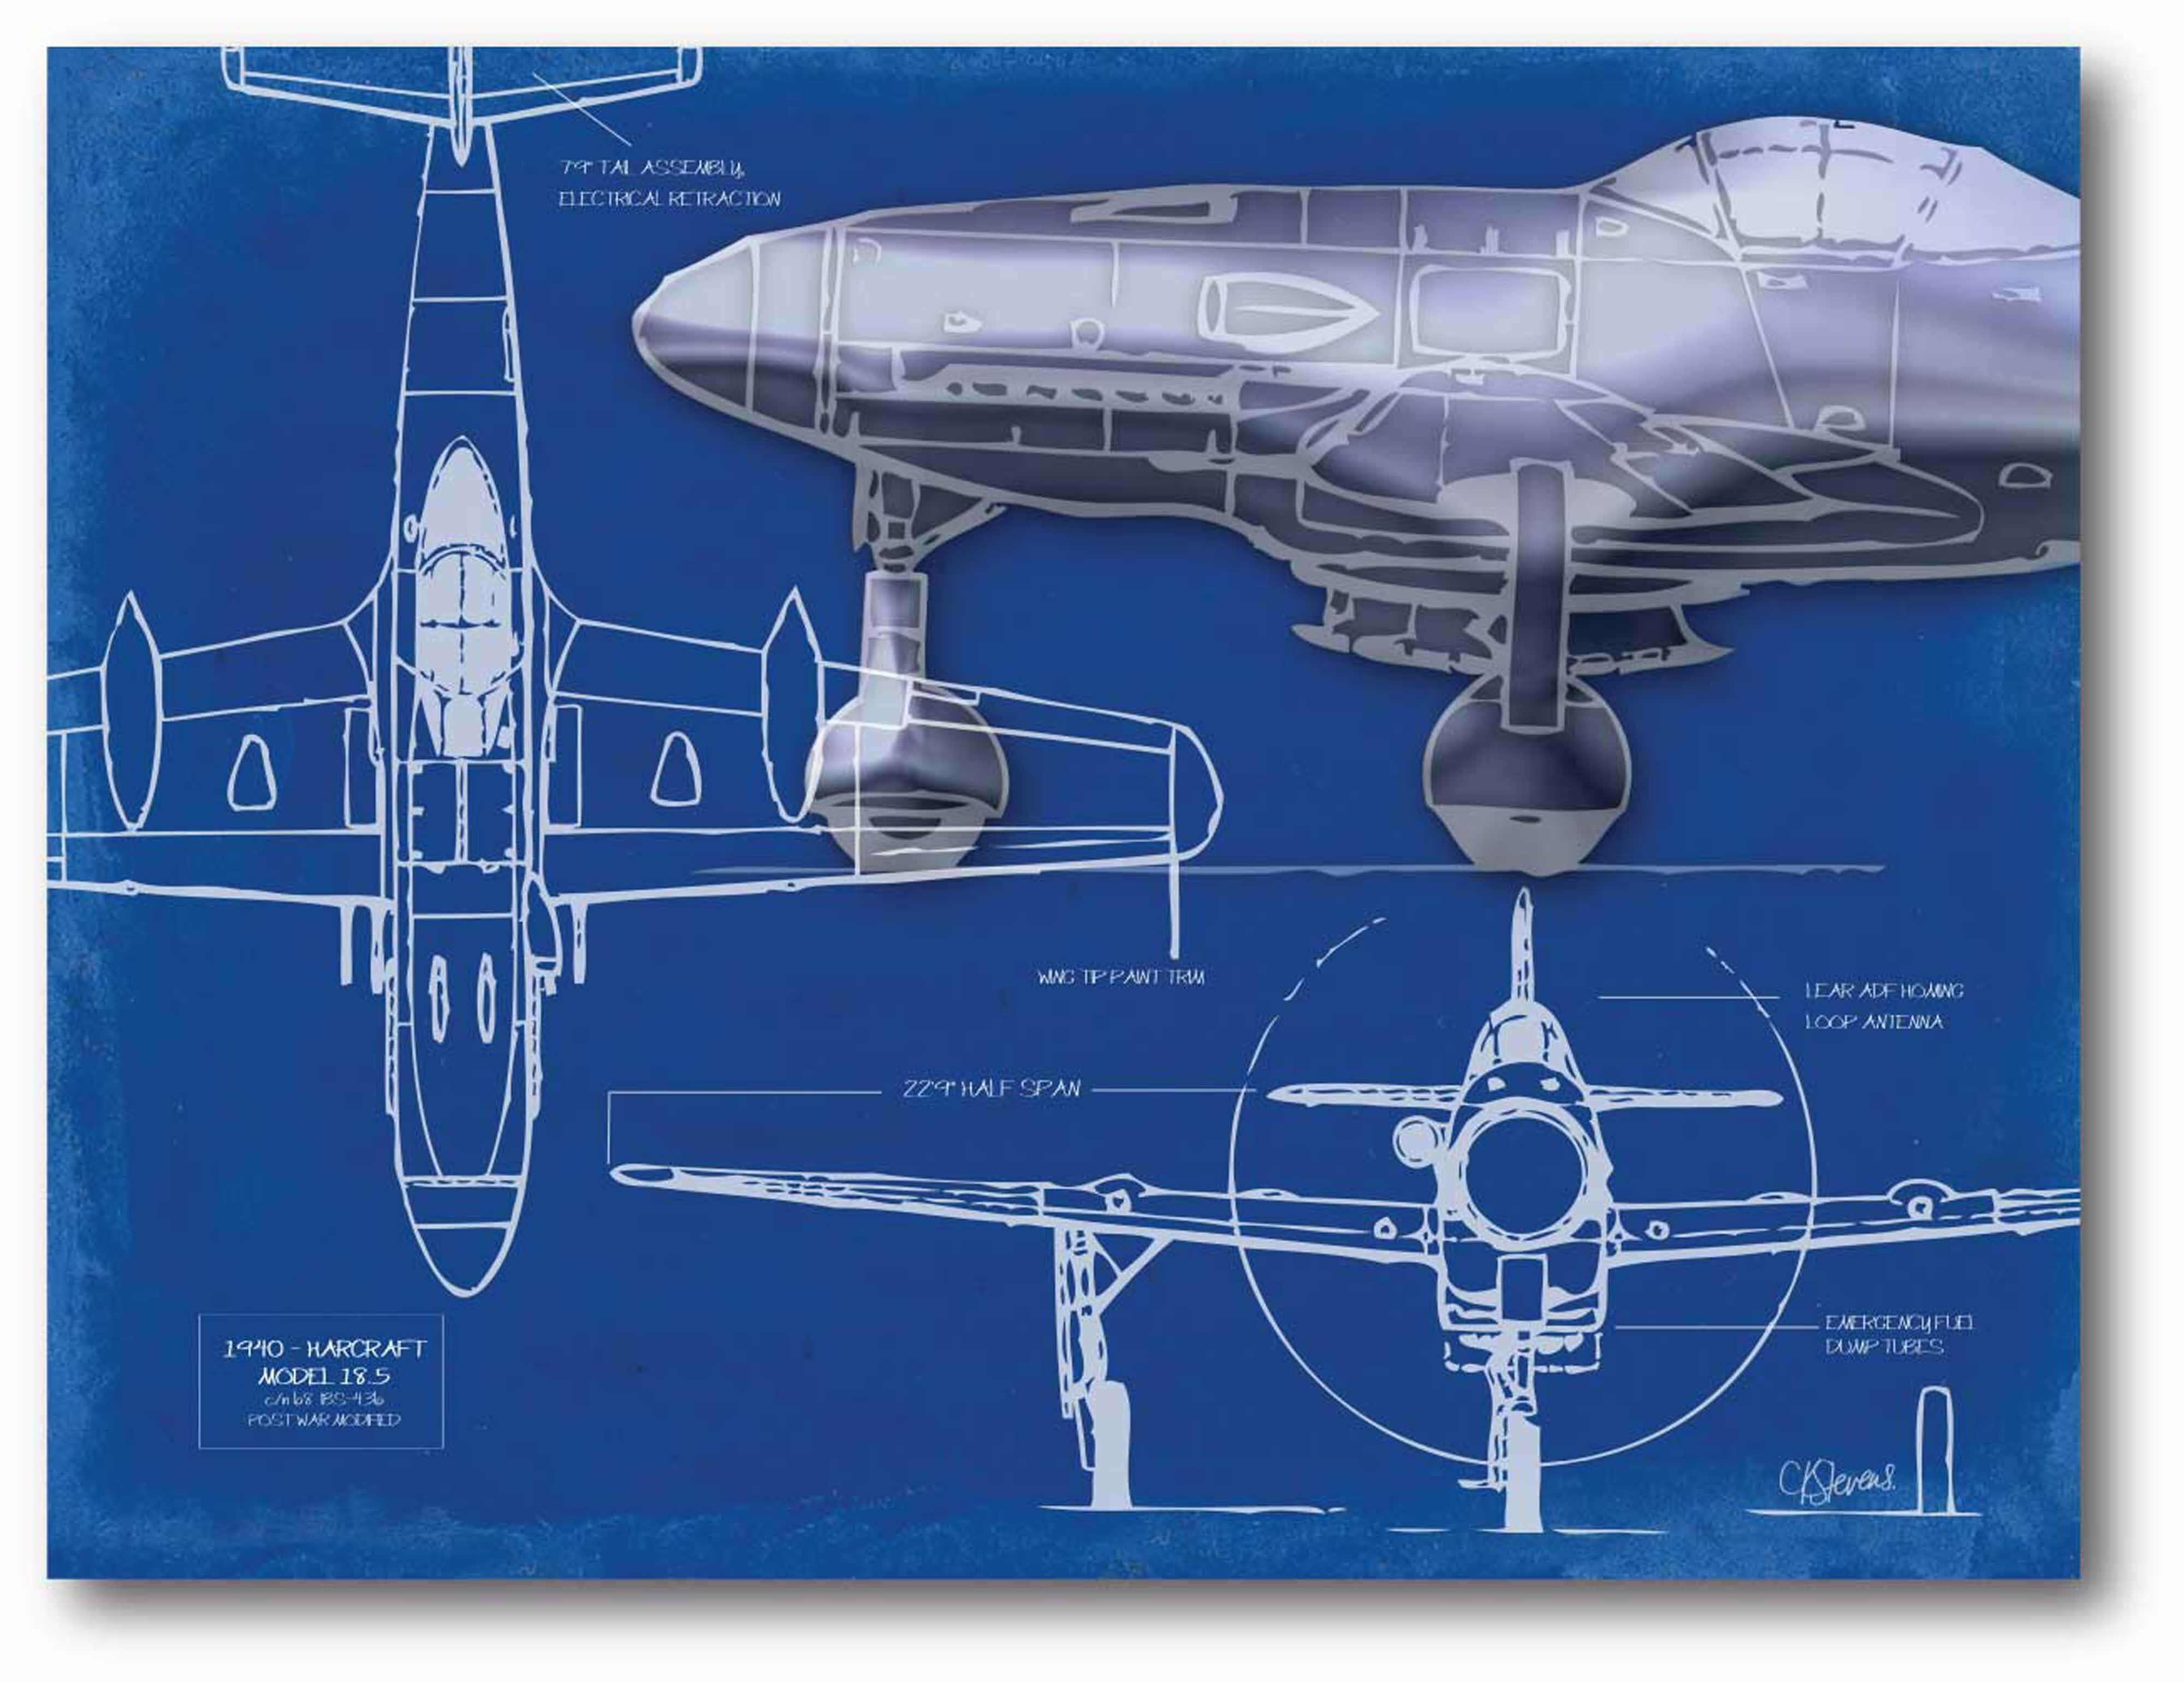 Williston forge airplane blueprint 2 graphic art print on williston forge airplane blueprint 2 graphic art print on stretched canvas wayfair malvernweather Choice Image